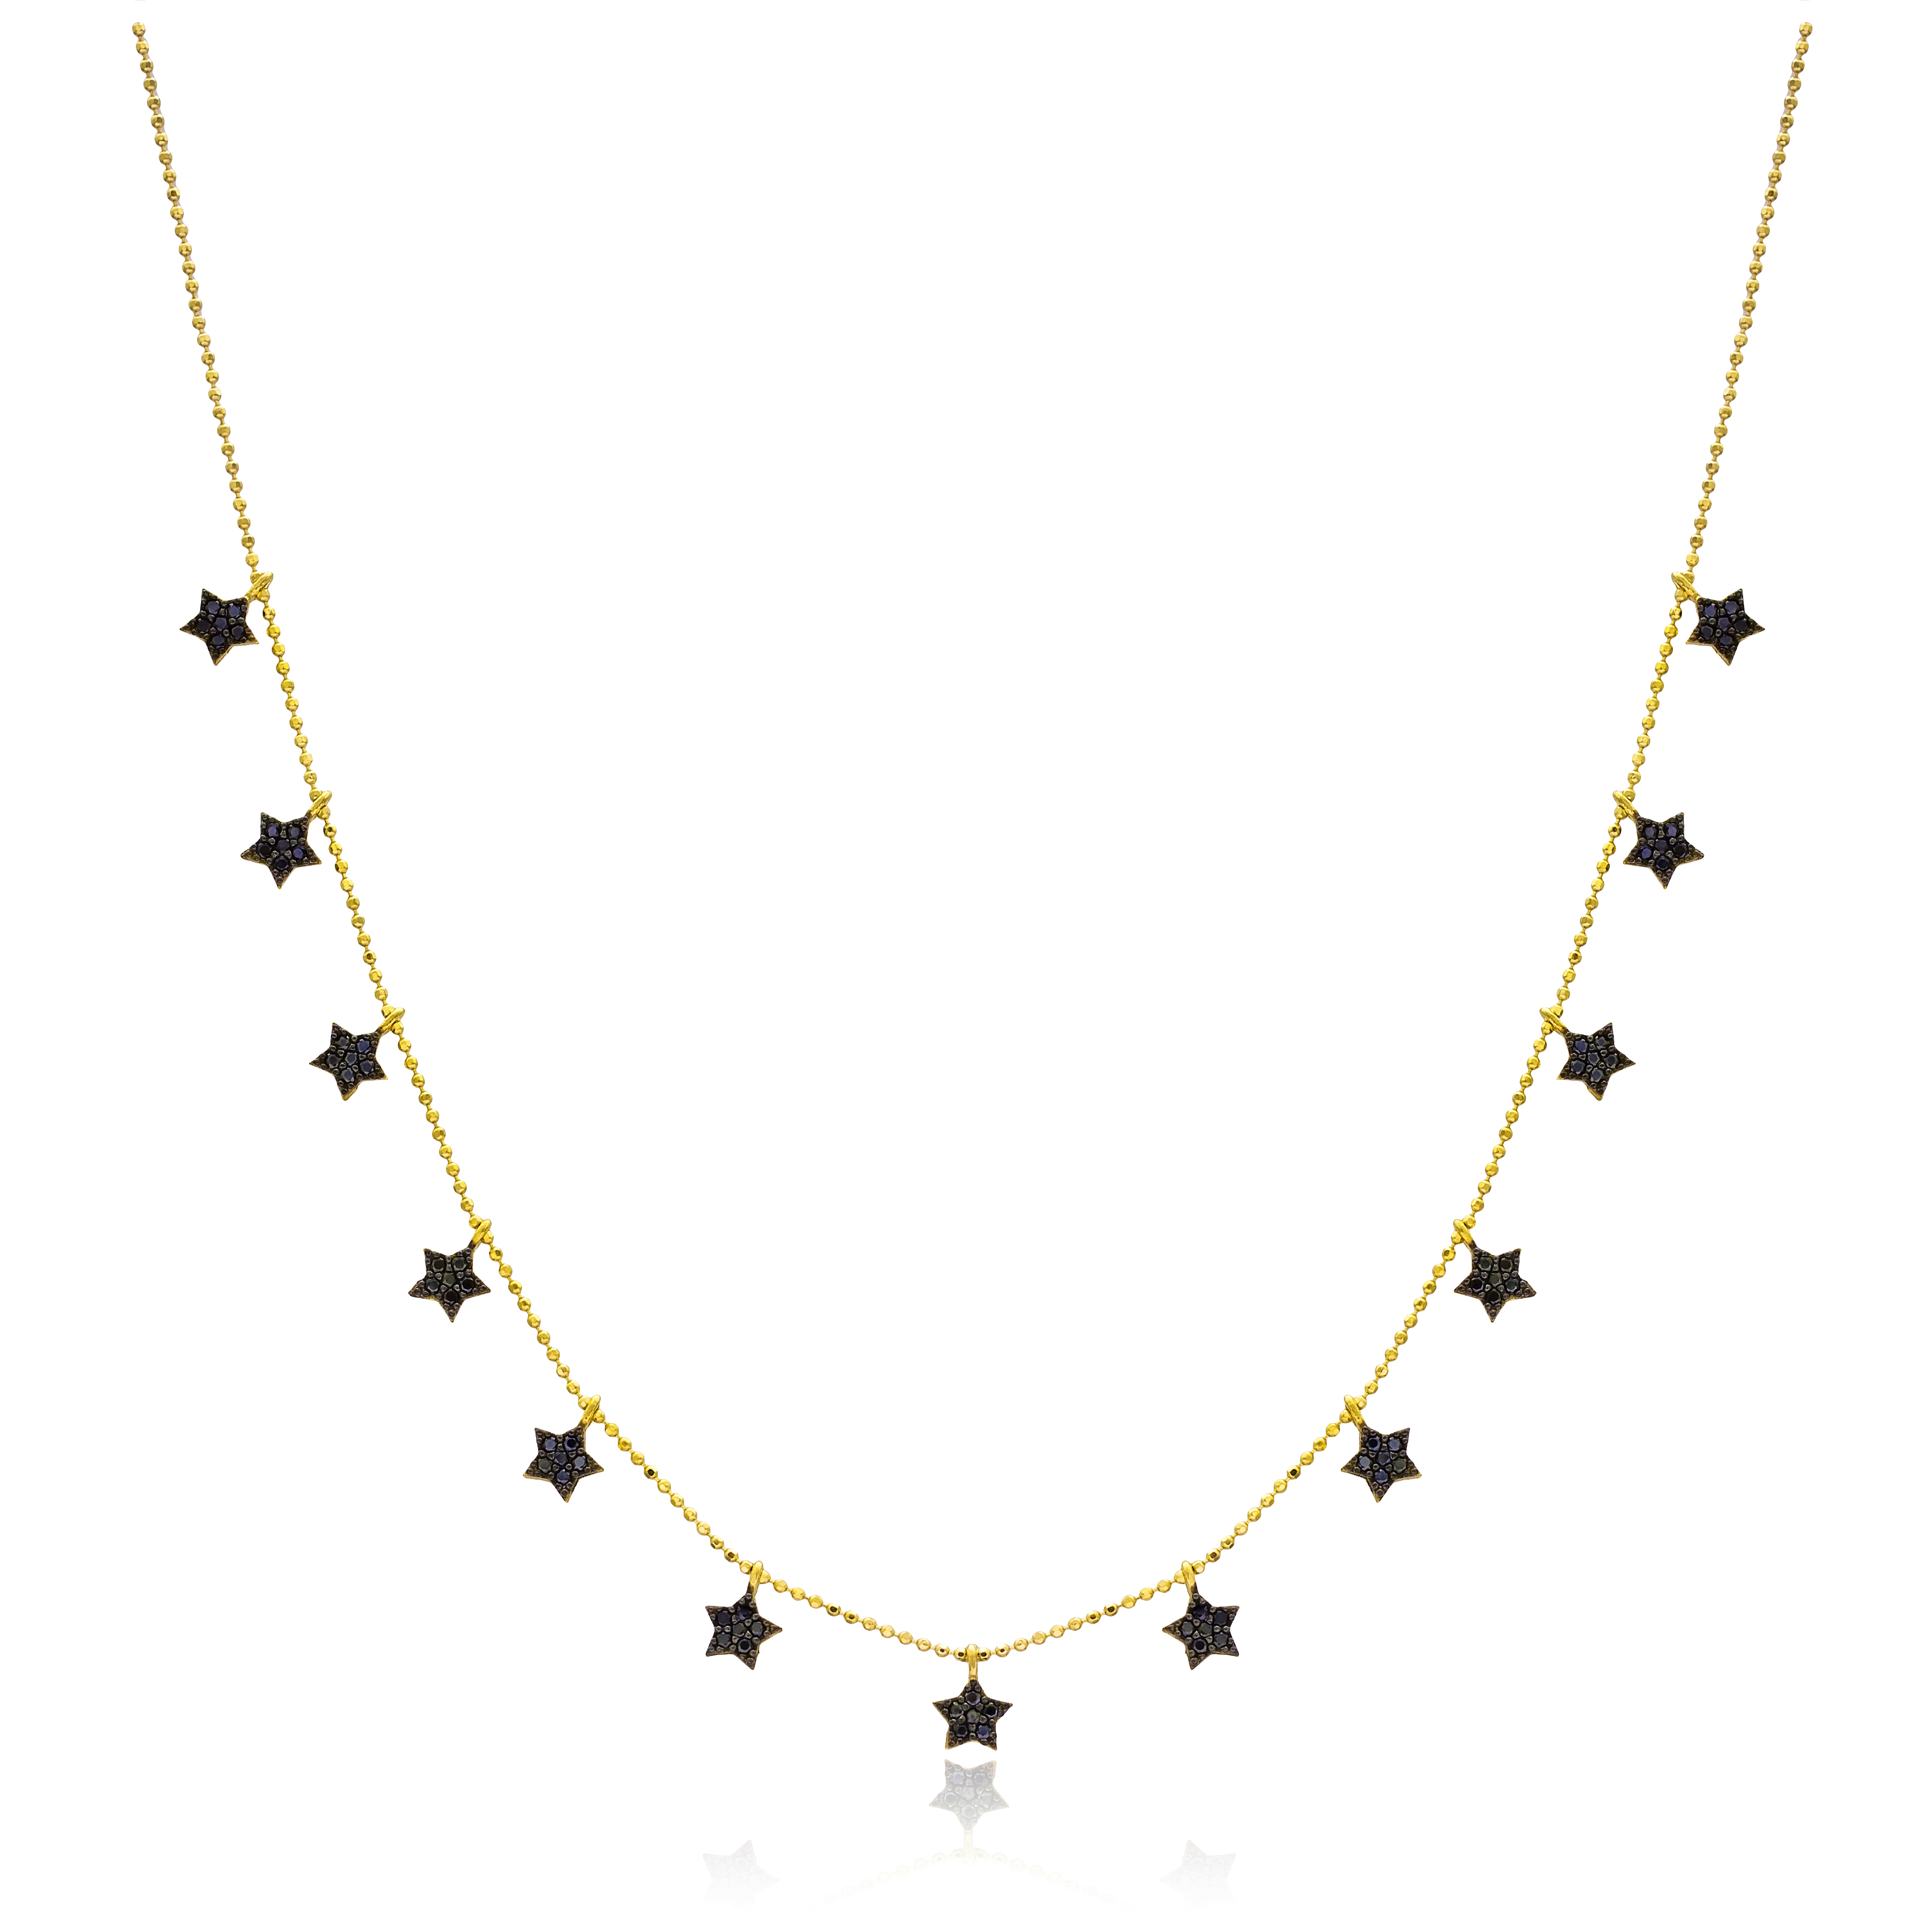 Black star necklace with gold chain